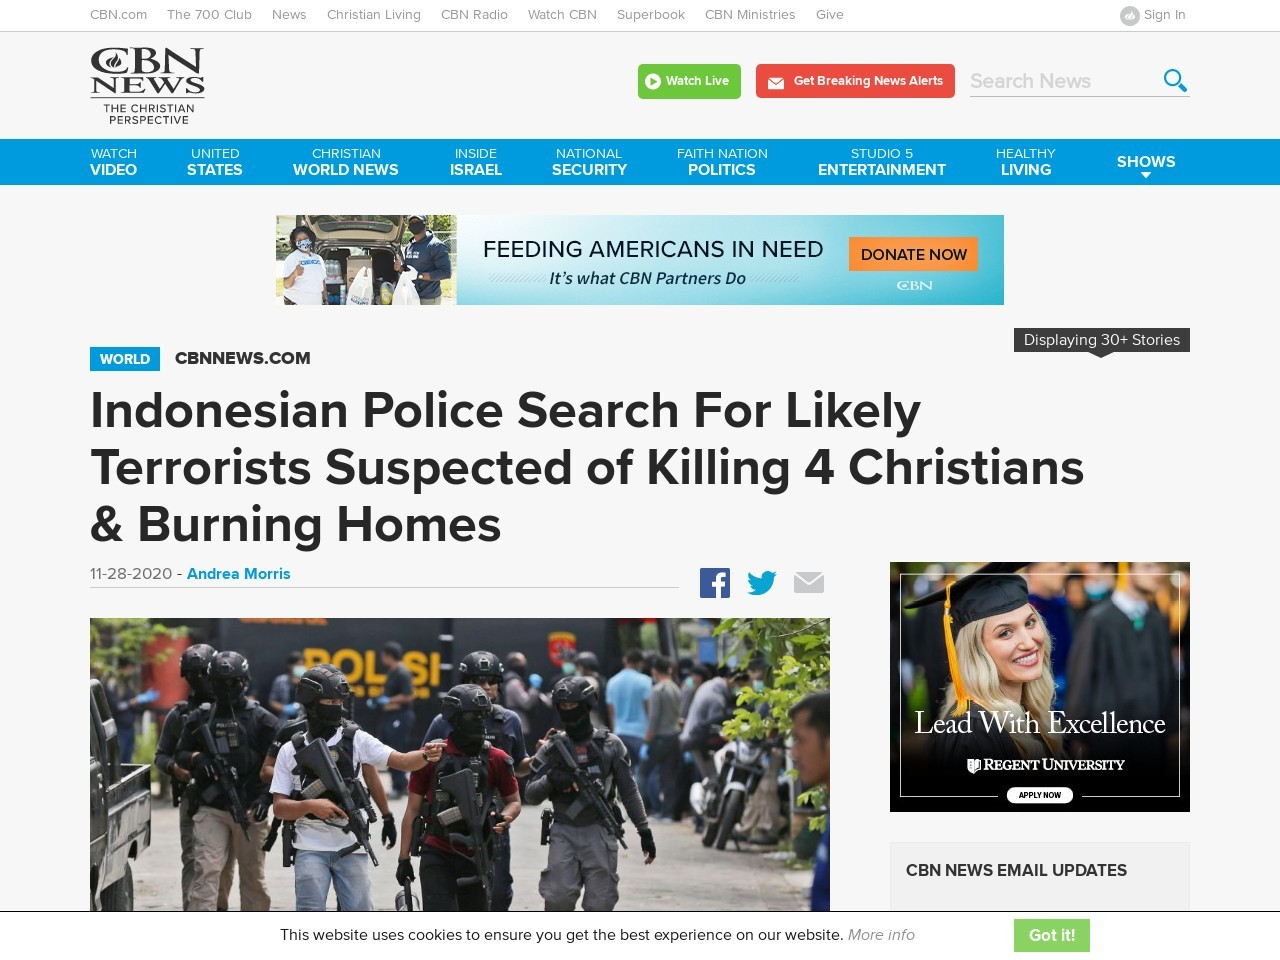 Indonesian Police Search For Likely Terrorists Suspected of Killing 4 Christians & Burning Homes